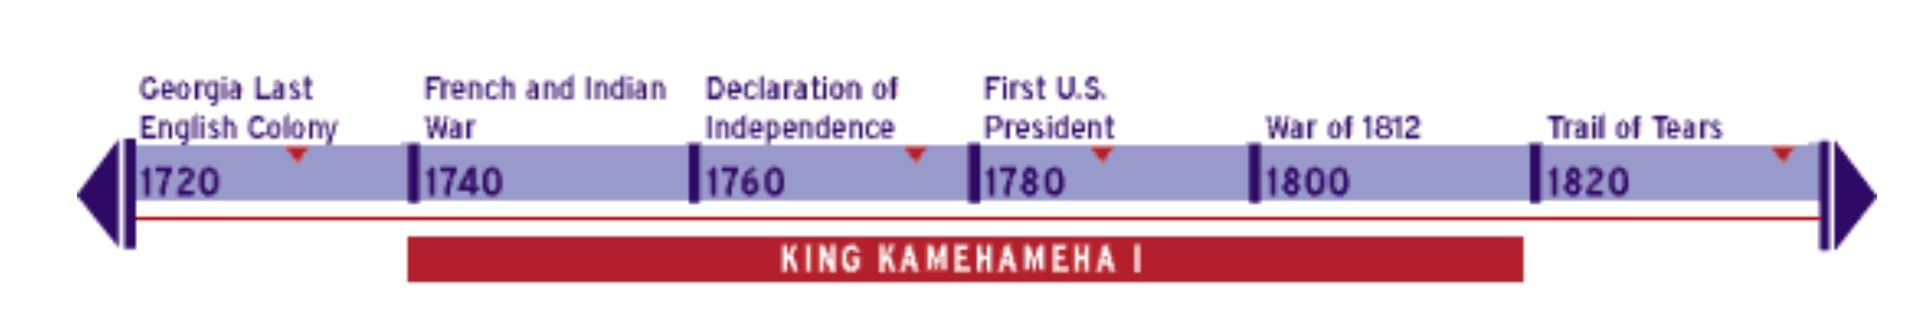 Timeline depicting the life of King Kamehameha I to the history of the United States